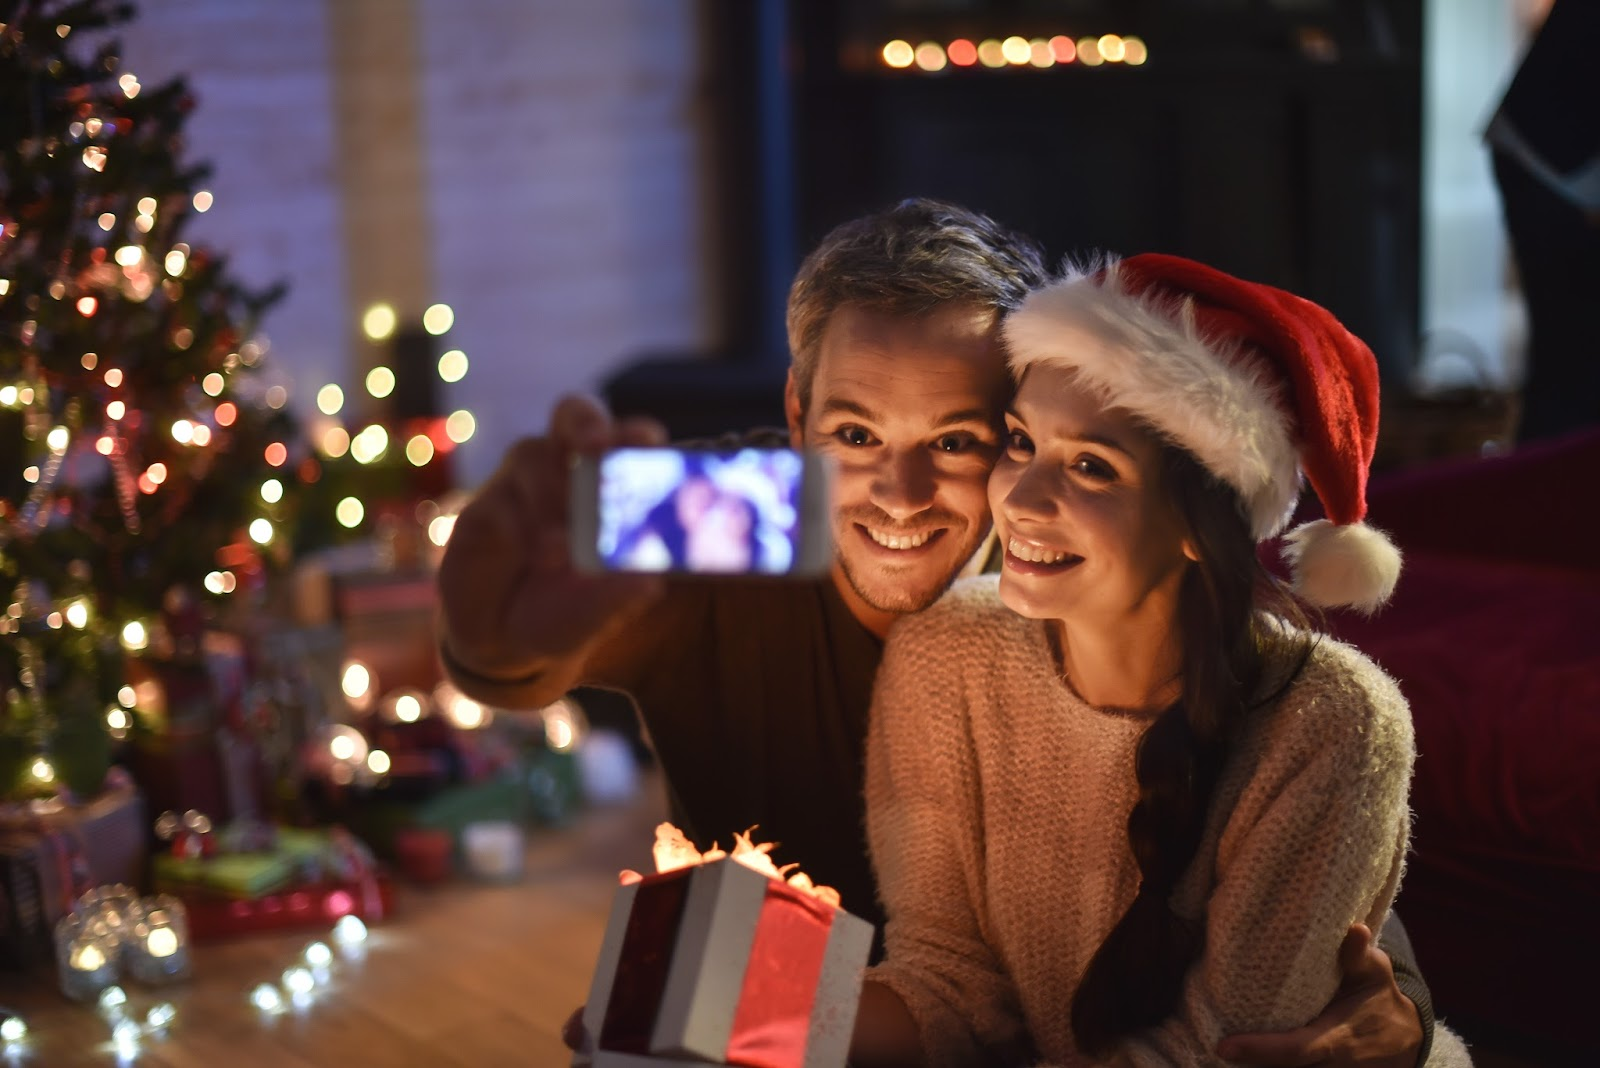 couple taking a selfie with a smartphone the night christmas